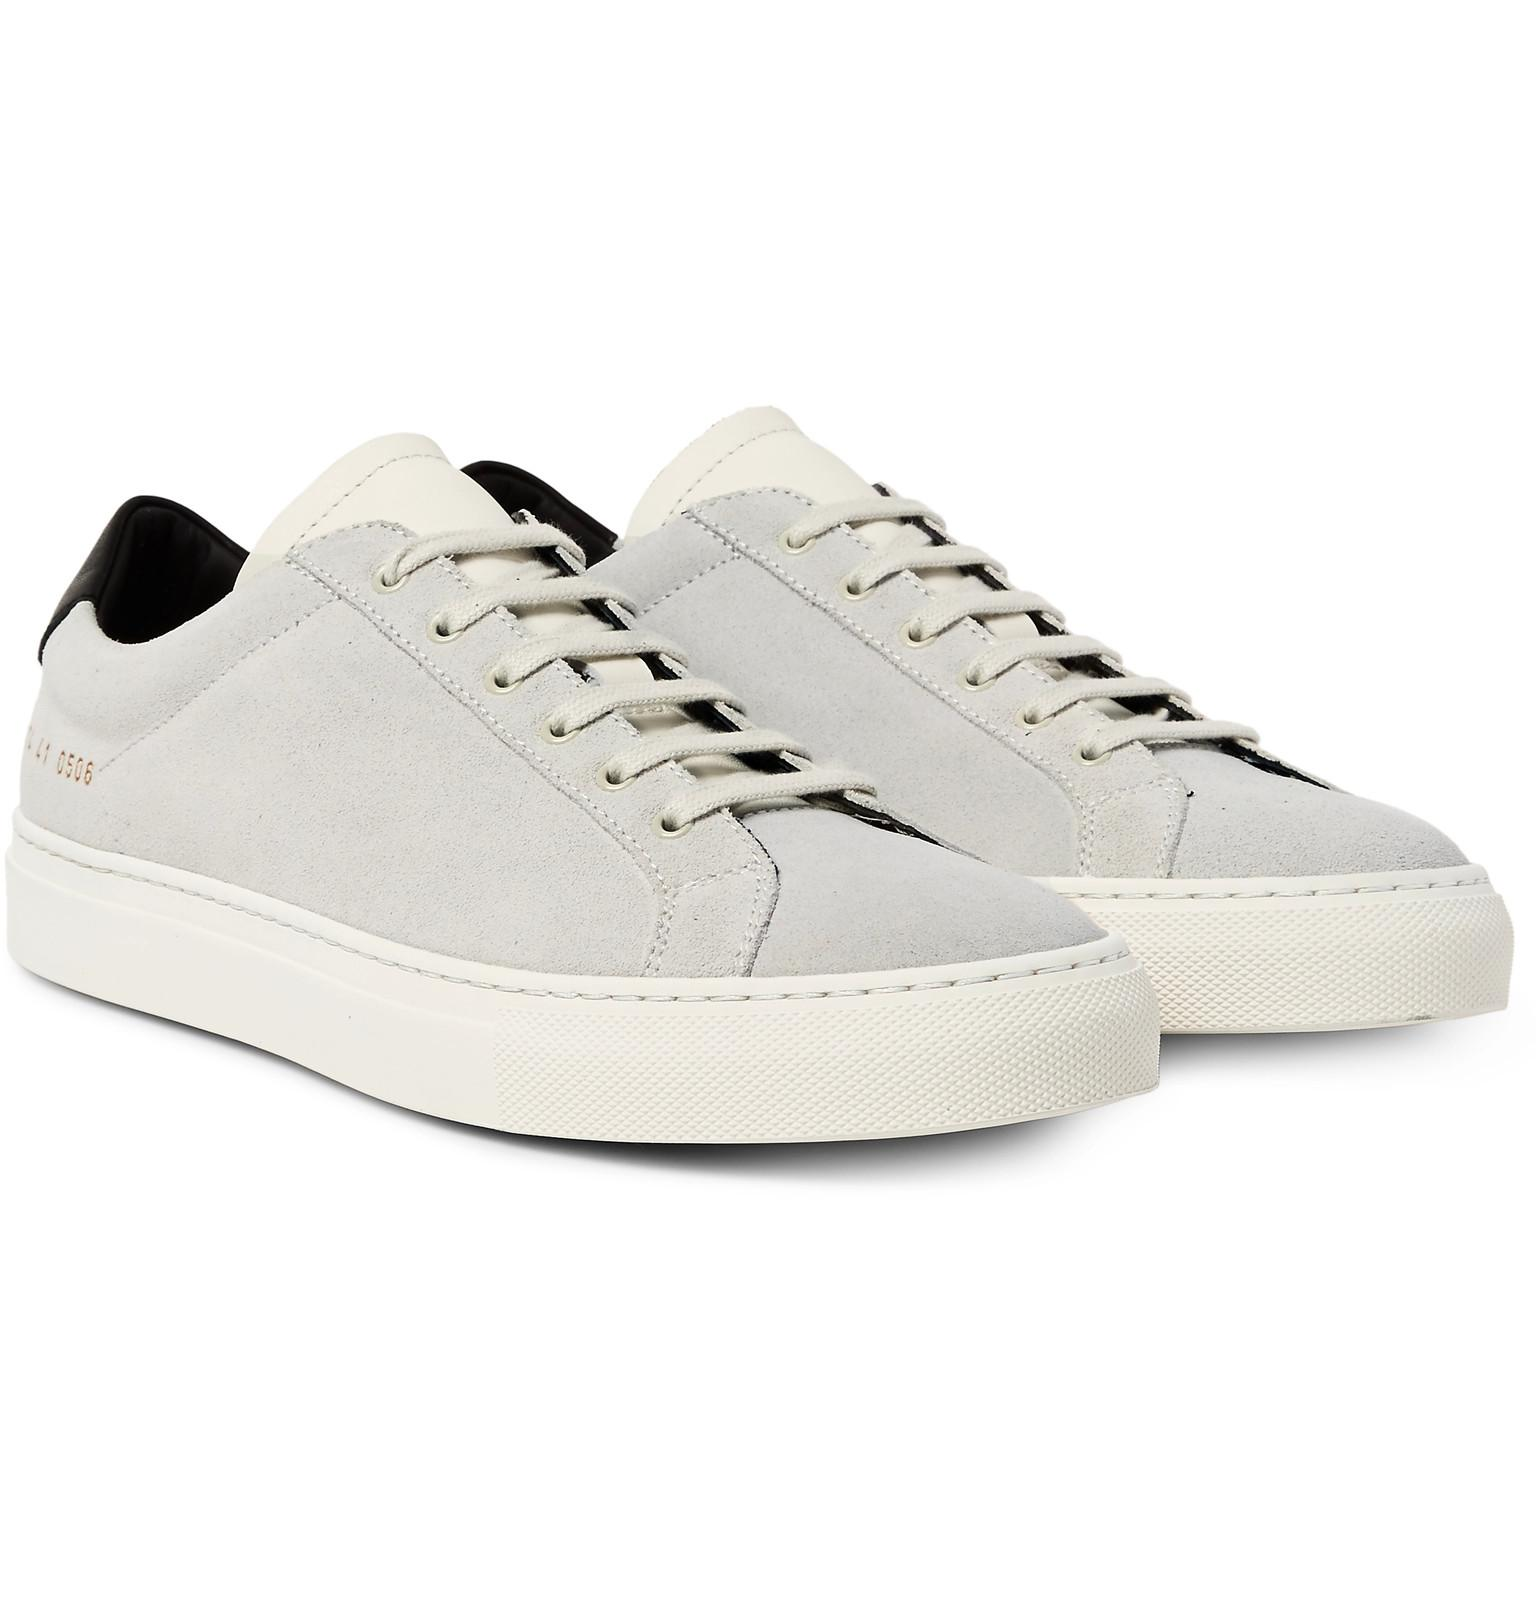 common projects achilles retro leather trimmed suede sneakers in white for men lyst. Black Bedroom Furniture Sets. Home Design Ideas